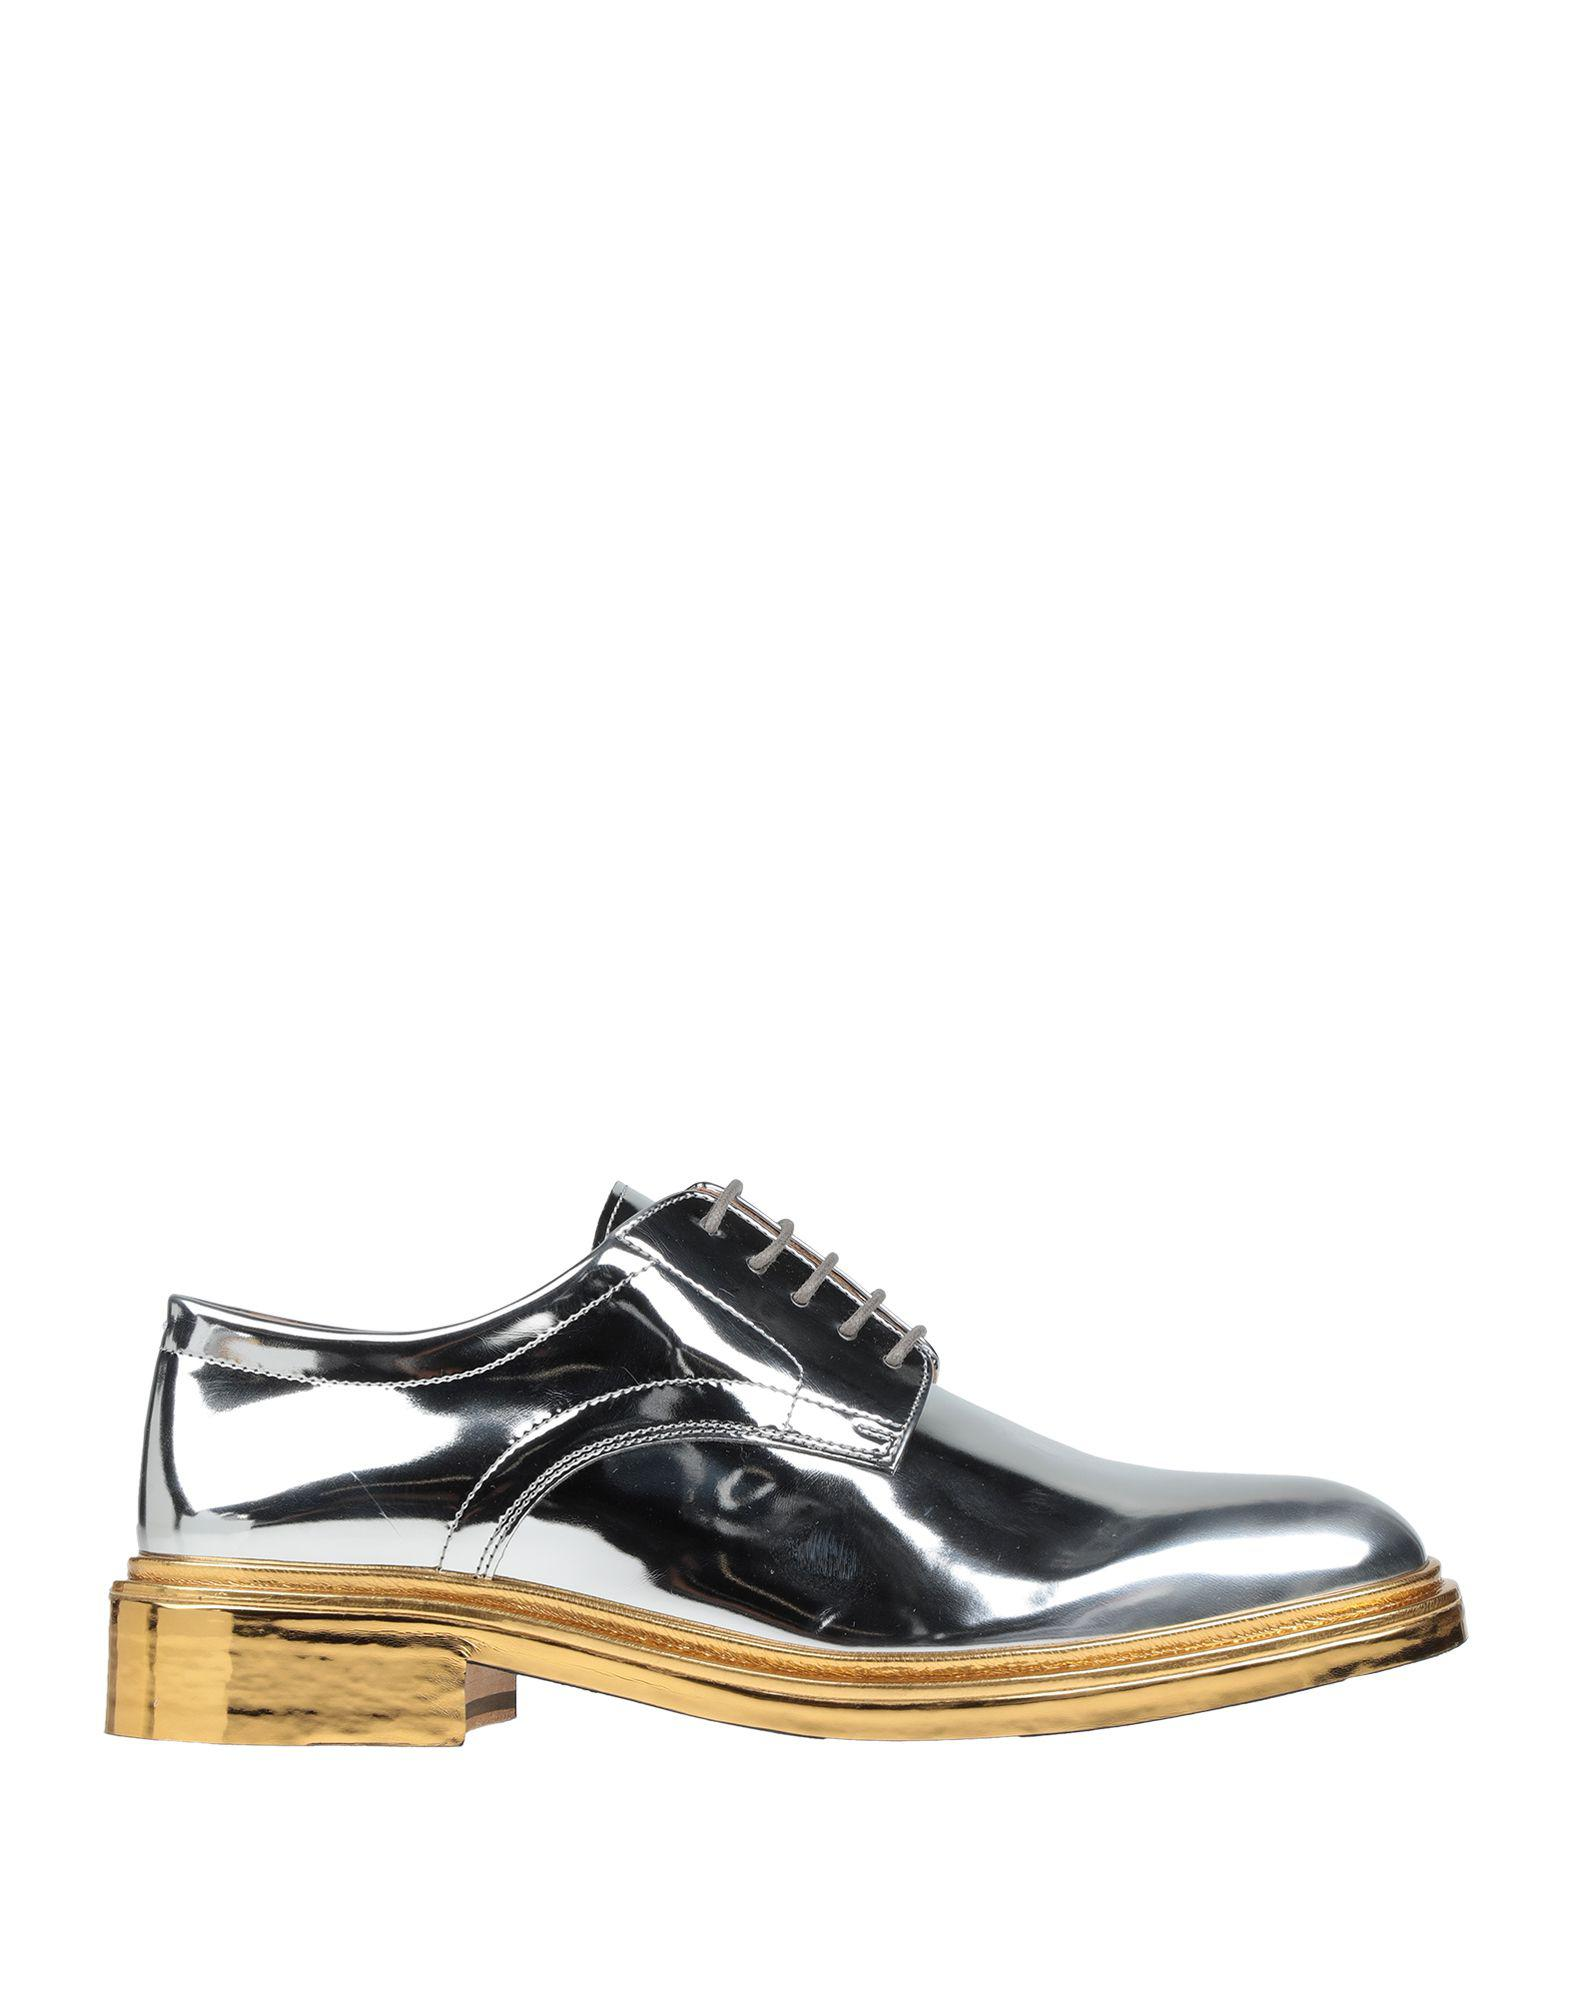 5ab9d082d09 Lyst - Maison Margiela Lace-up Shoe in Metallic for Men